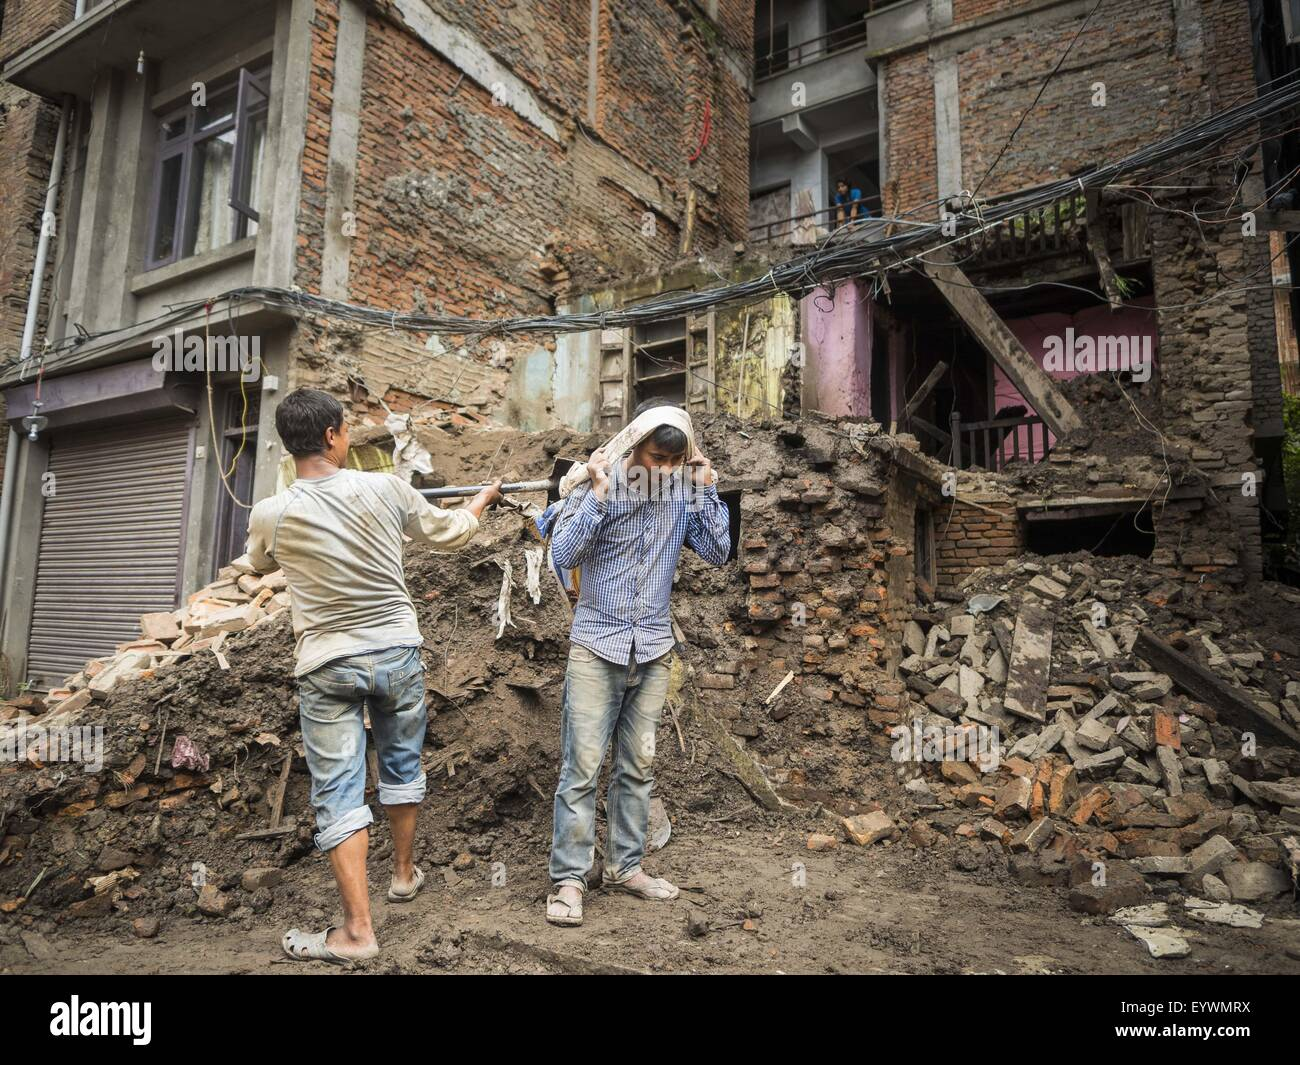 Kathmandu, Nepal. 1st Aug, 2015. Workers in Kathmandu recover bricks from of a home destroyed by the earthquake. - Stock Image